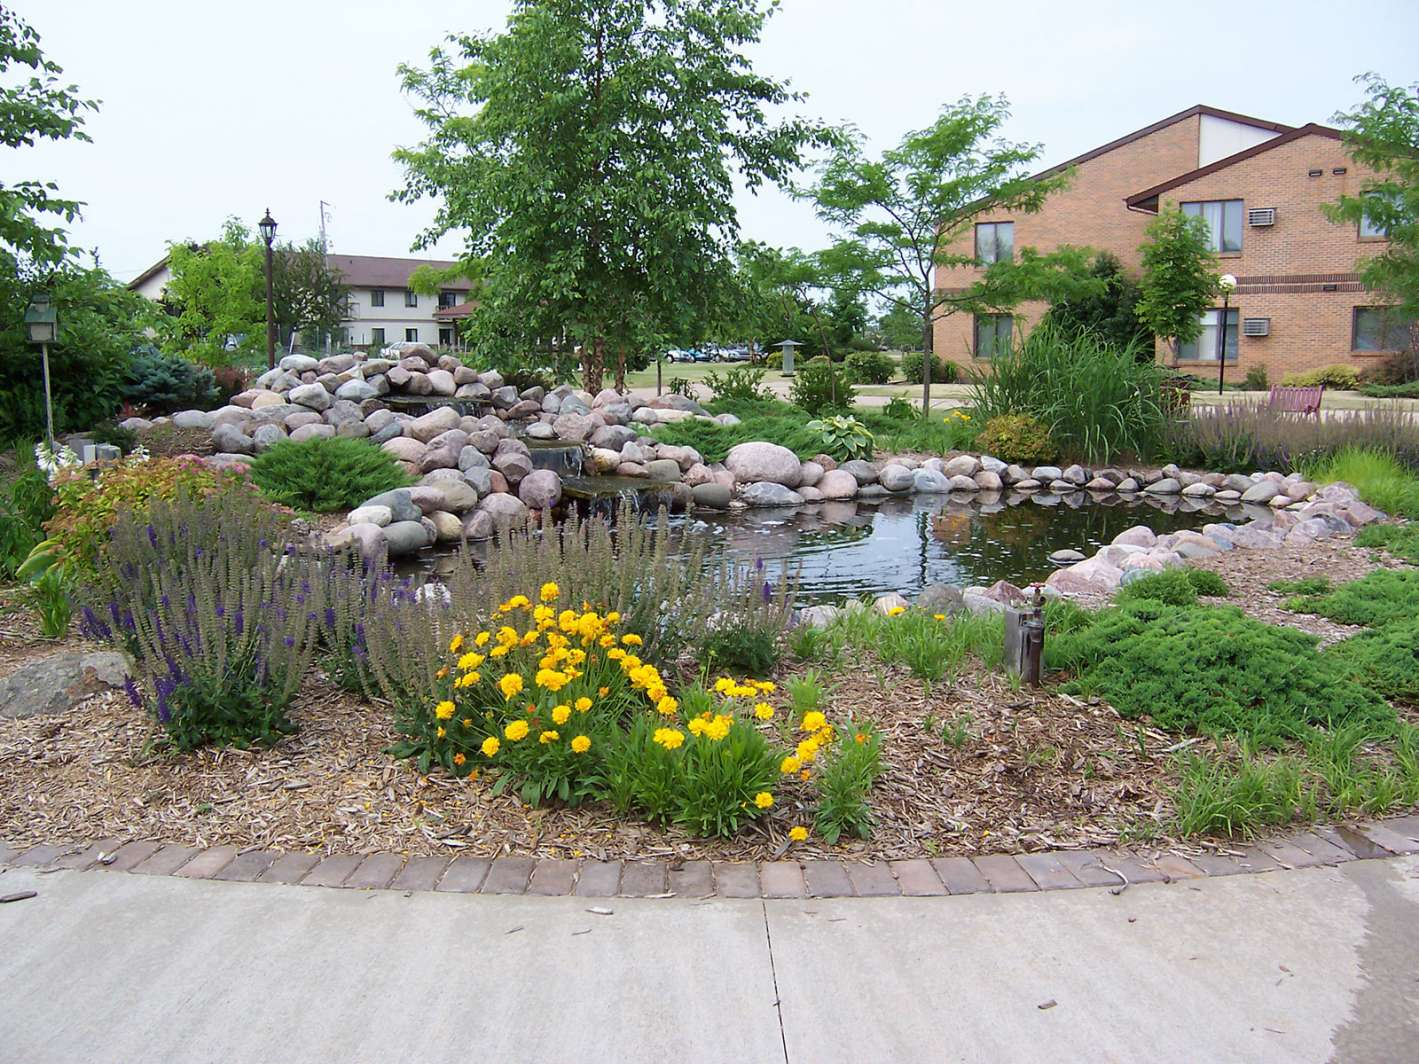 Municipal Commercial Therapeutic Landscapes In Wisconsin